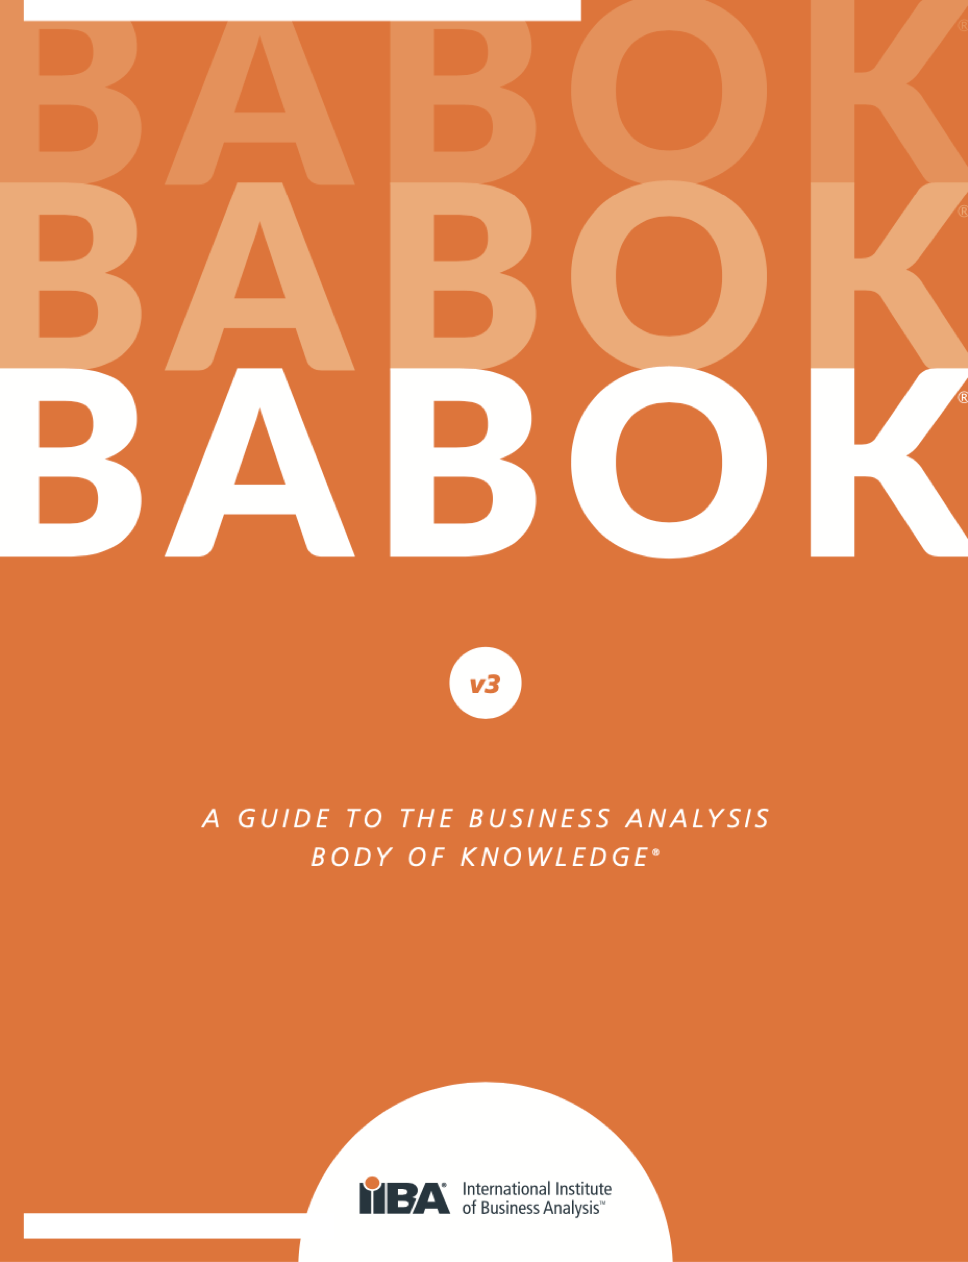 A Guide to the Business Analysis Body of Knowledge at Social-Media.press